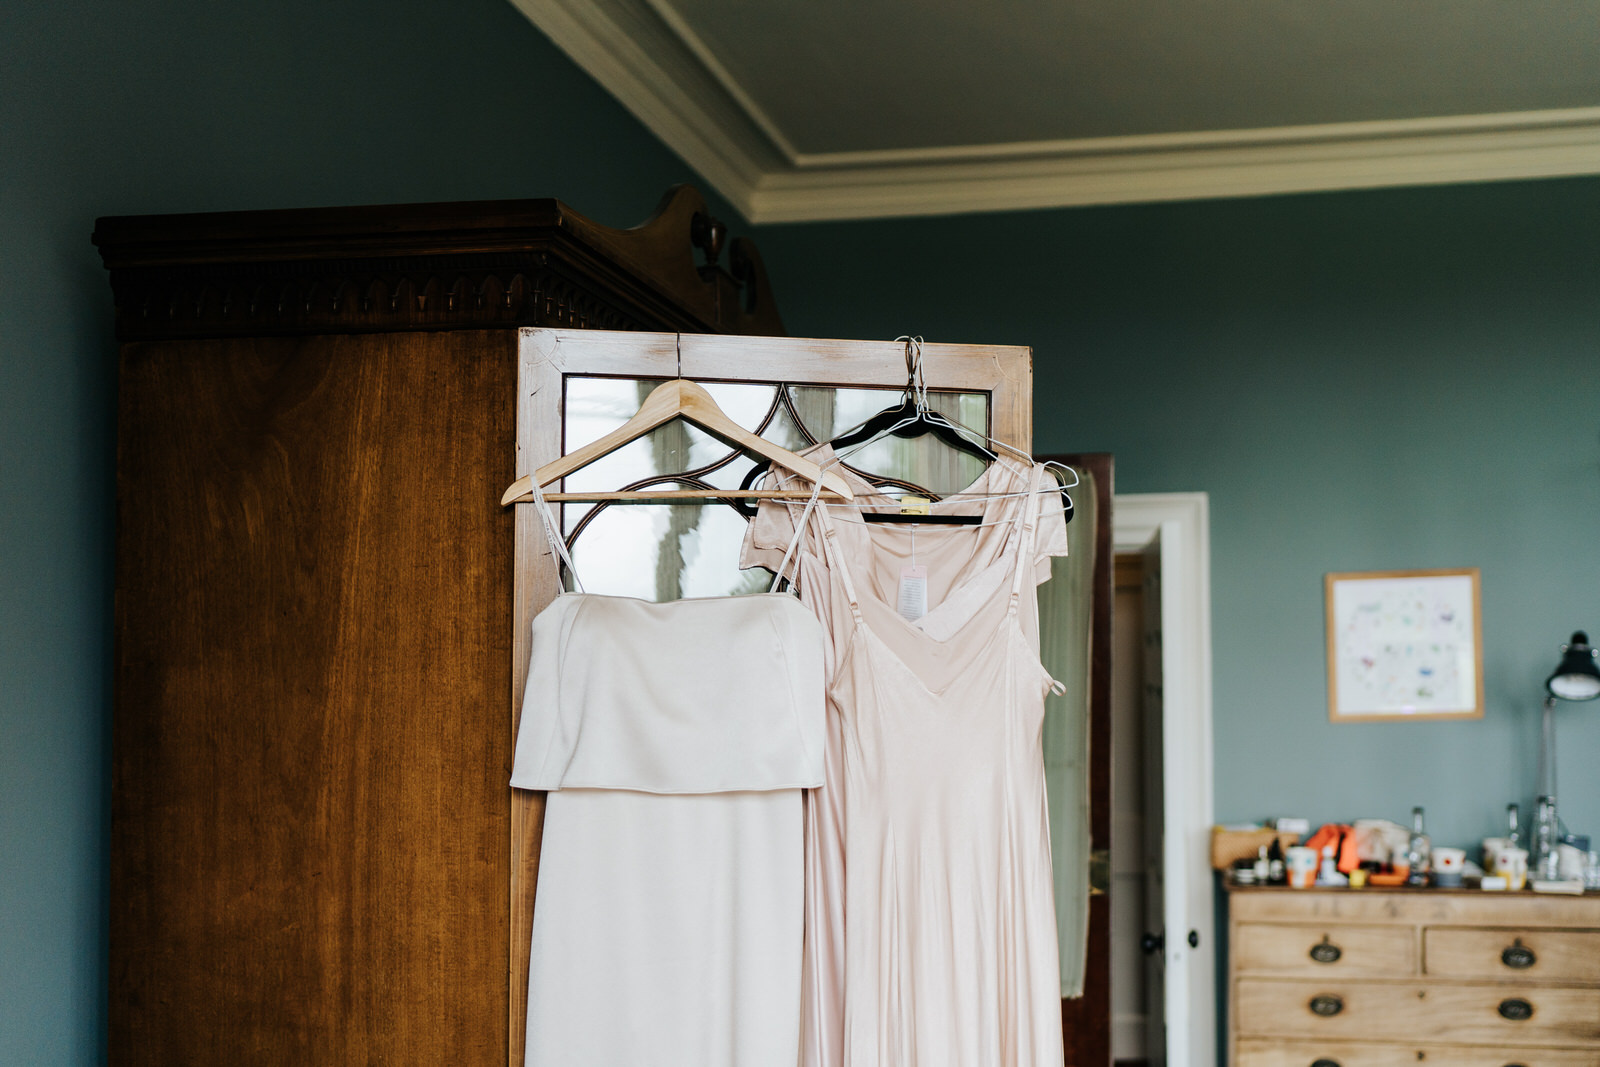 Bridesmaid dresses hang on the door of a closet in dressing room